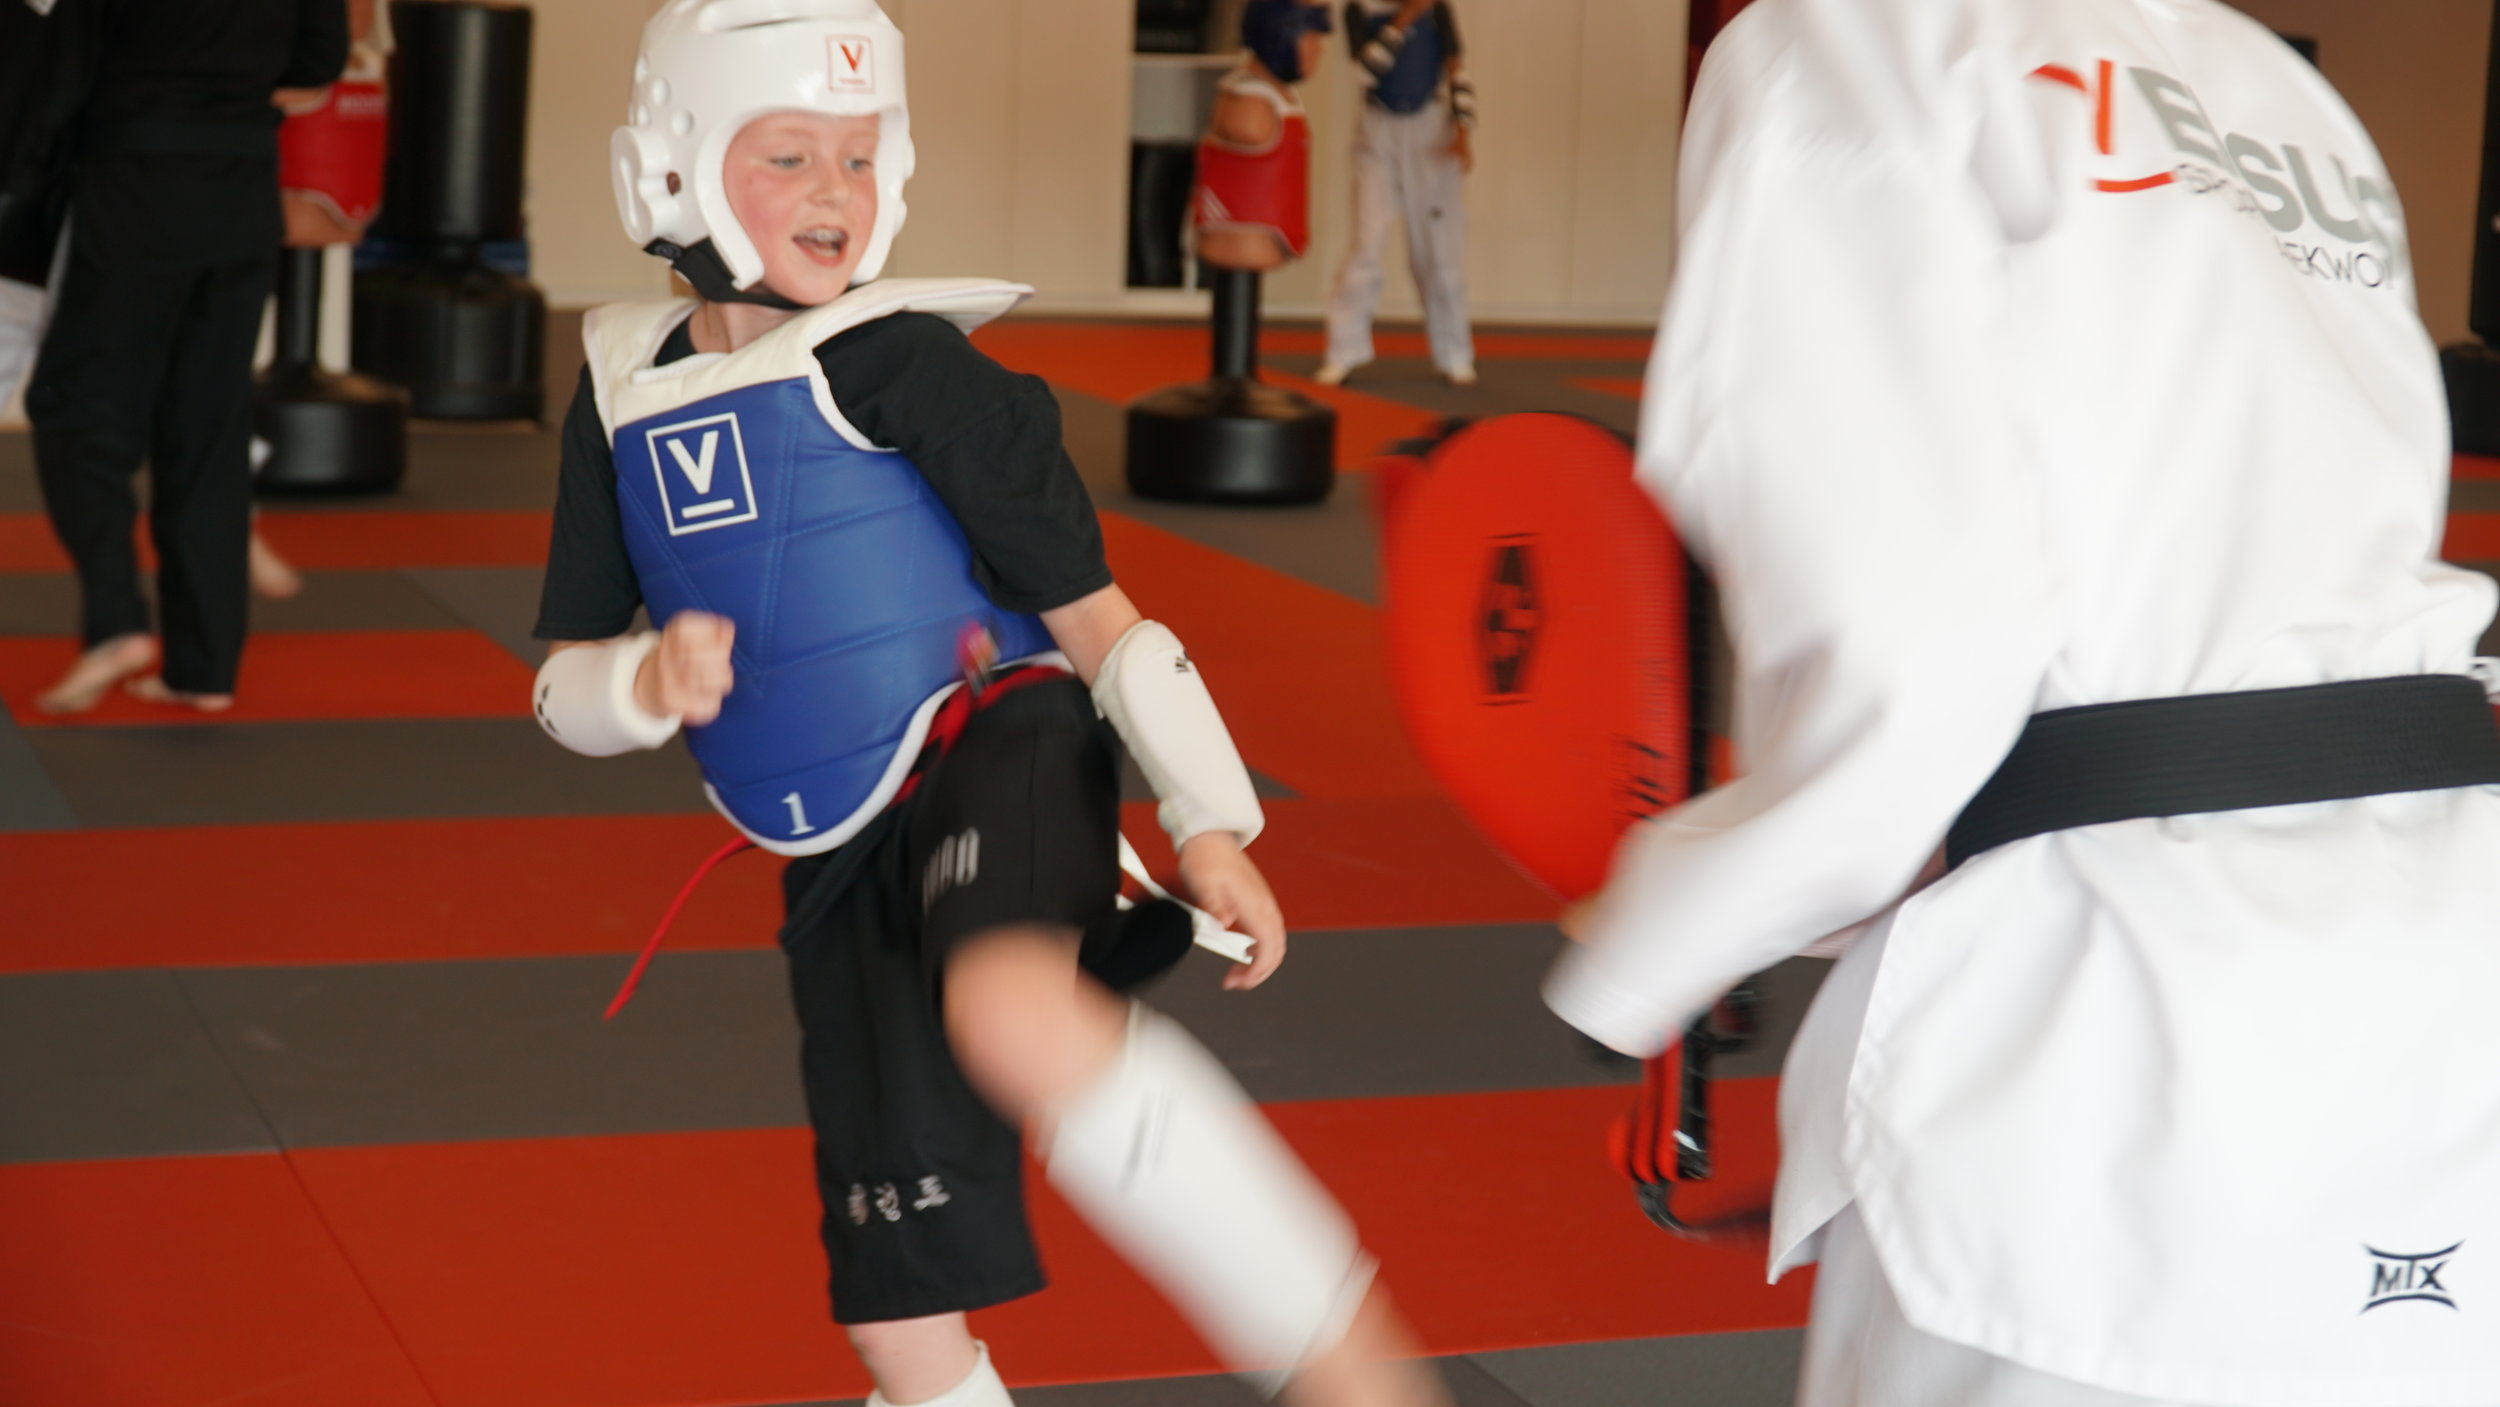 PERSONAL GROWTH - Vesus Sport Taekwondo believes that the traditional values of martial arts including respect, discipline, and confidence should always be at the core of training in the sport of taekwondo. Through our foundation as martial artists, our students strive for balance between the body, personality and mind.